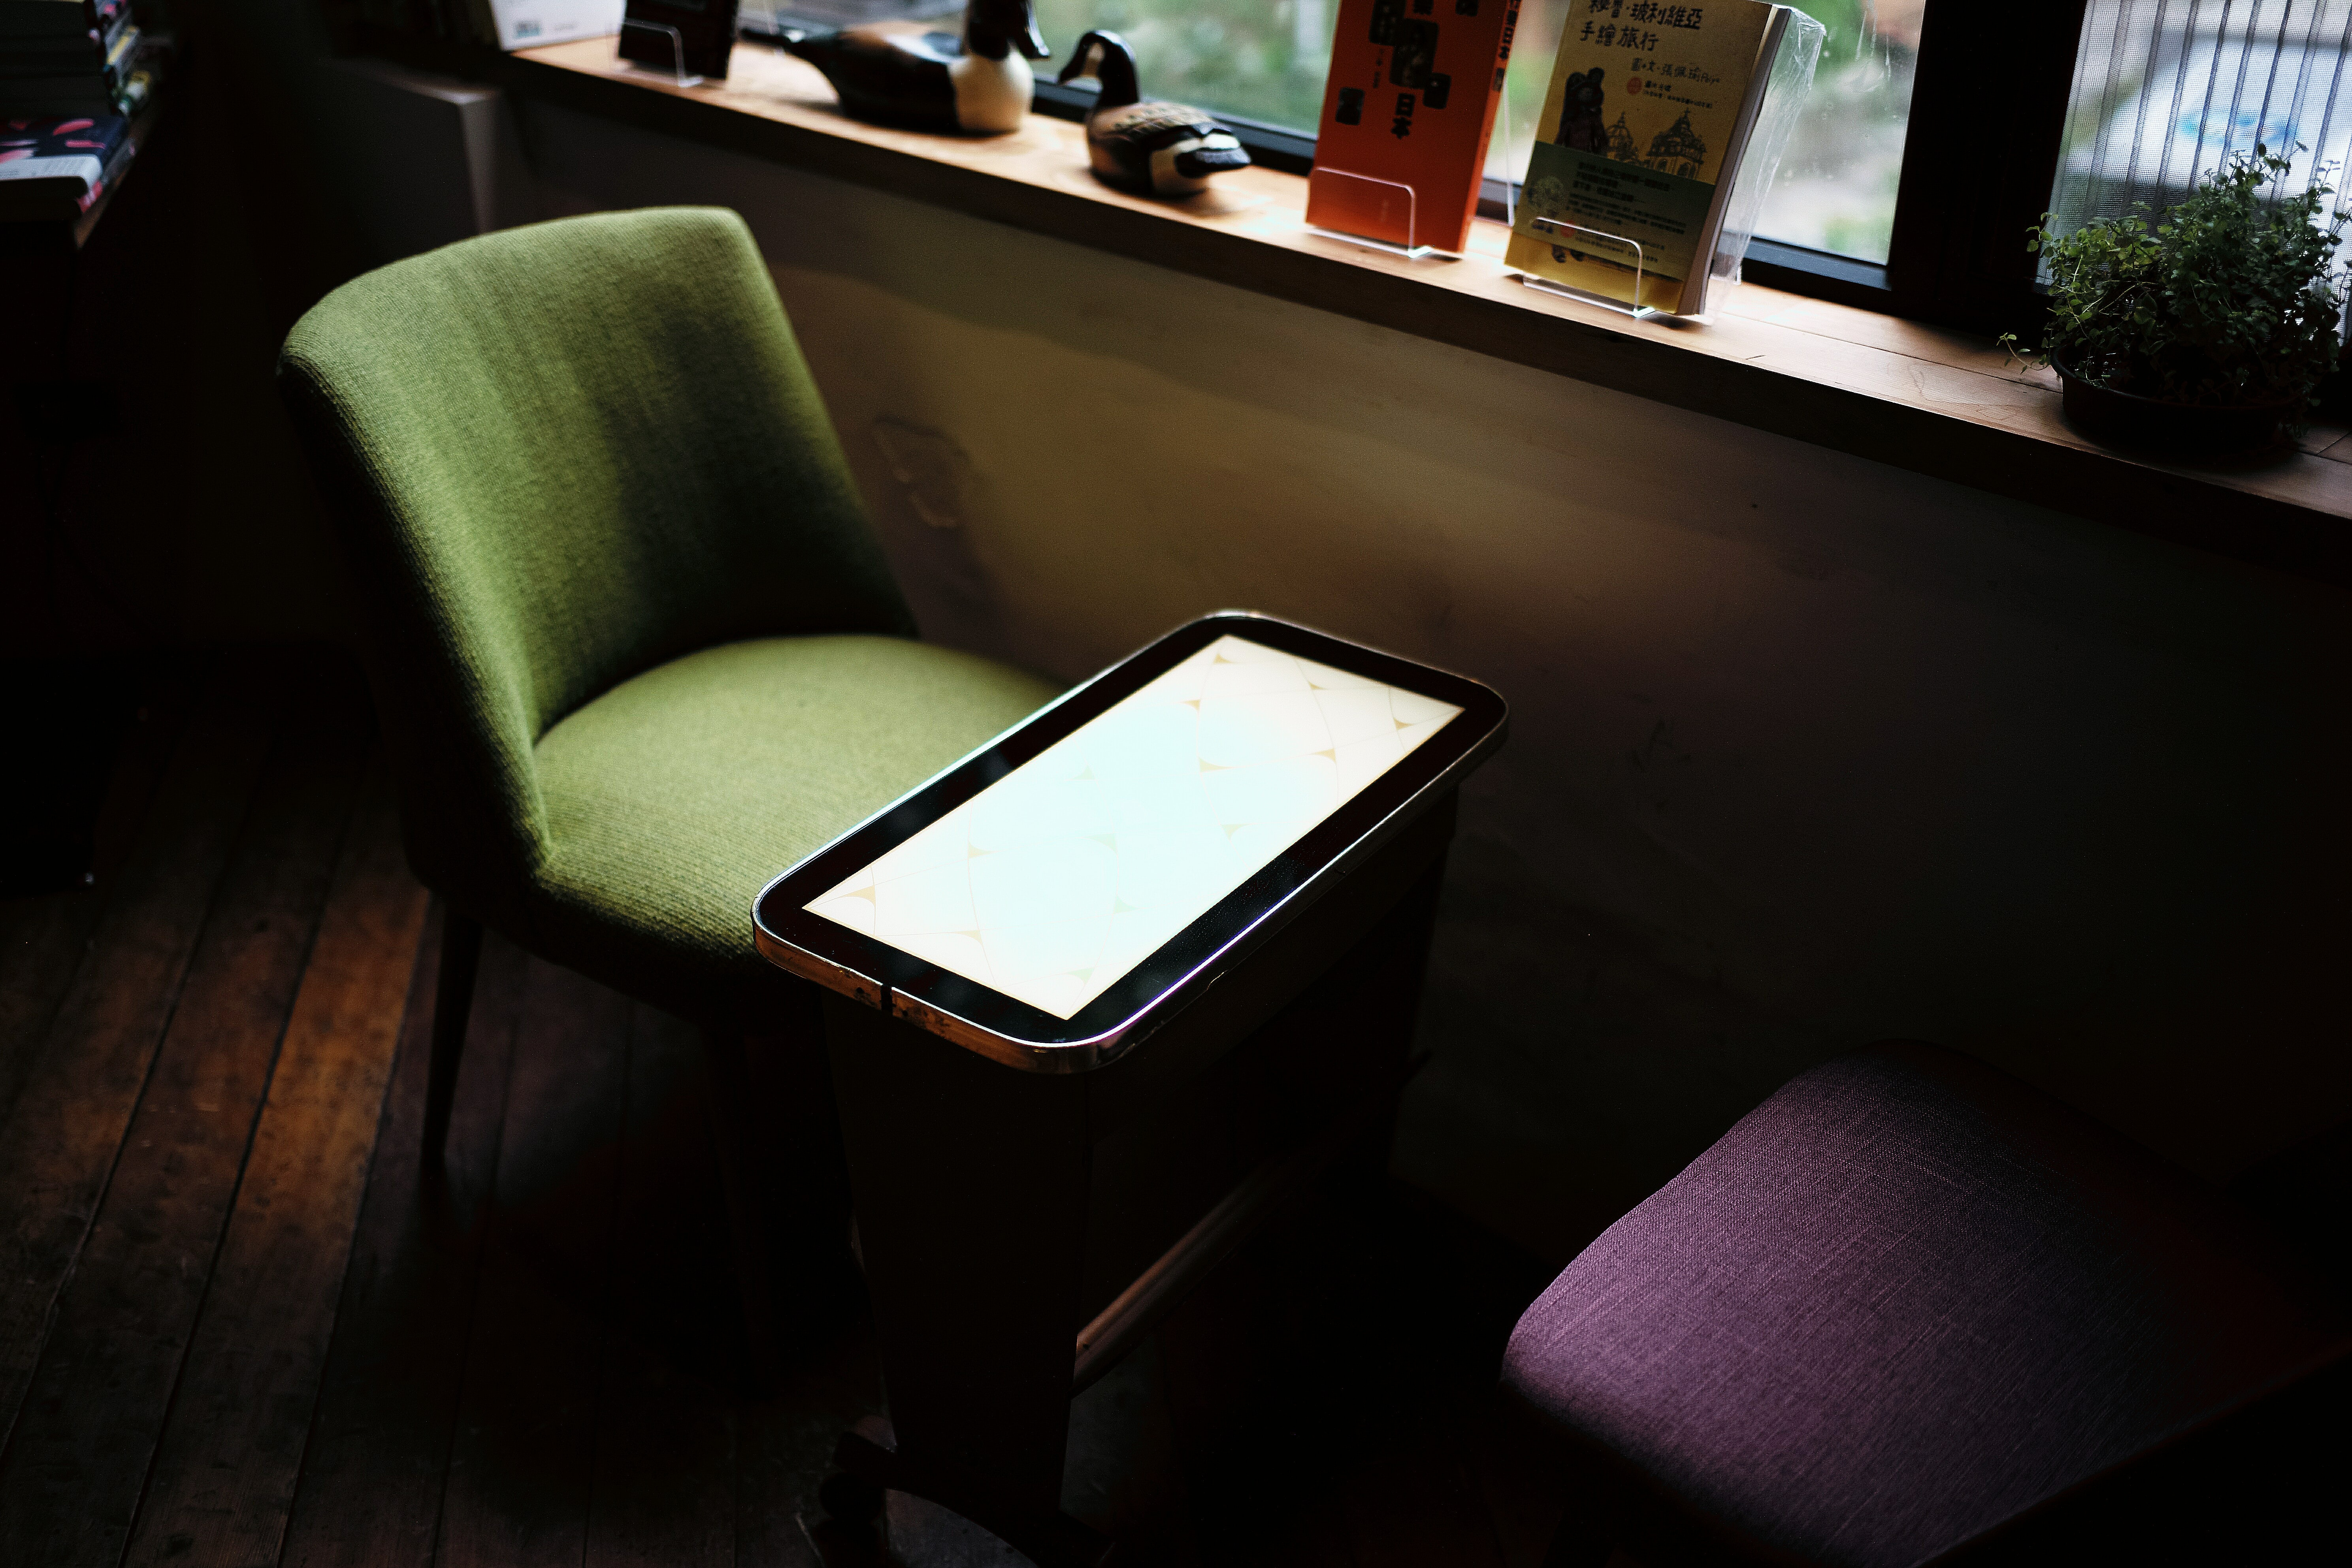 A small coffee table with two chairs by a window